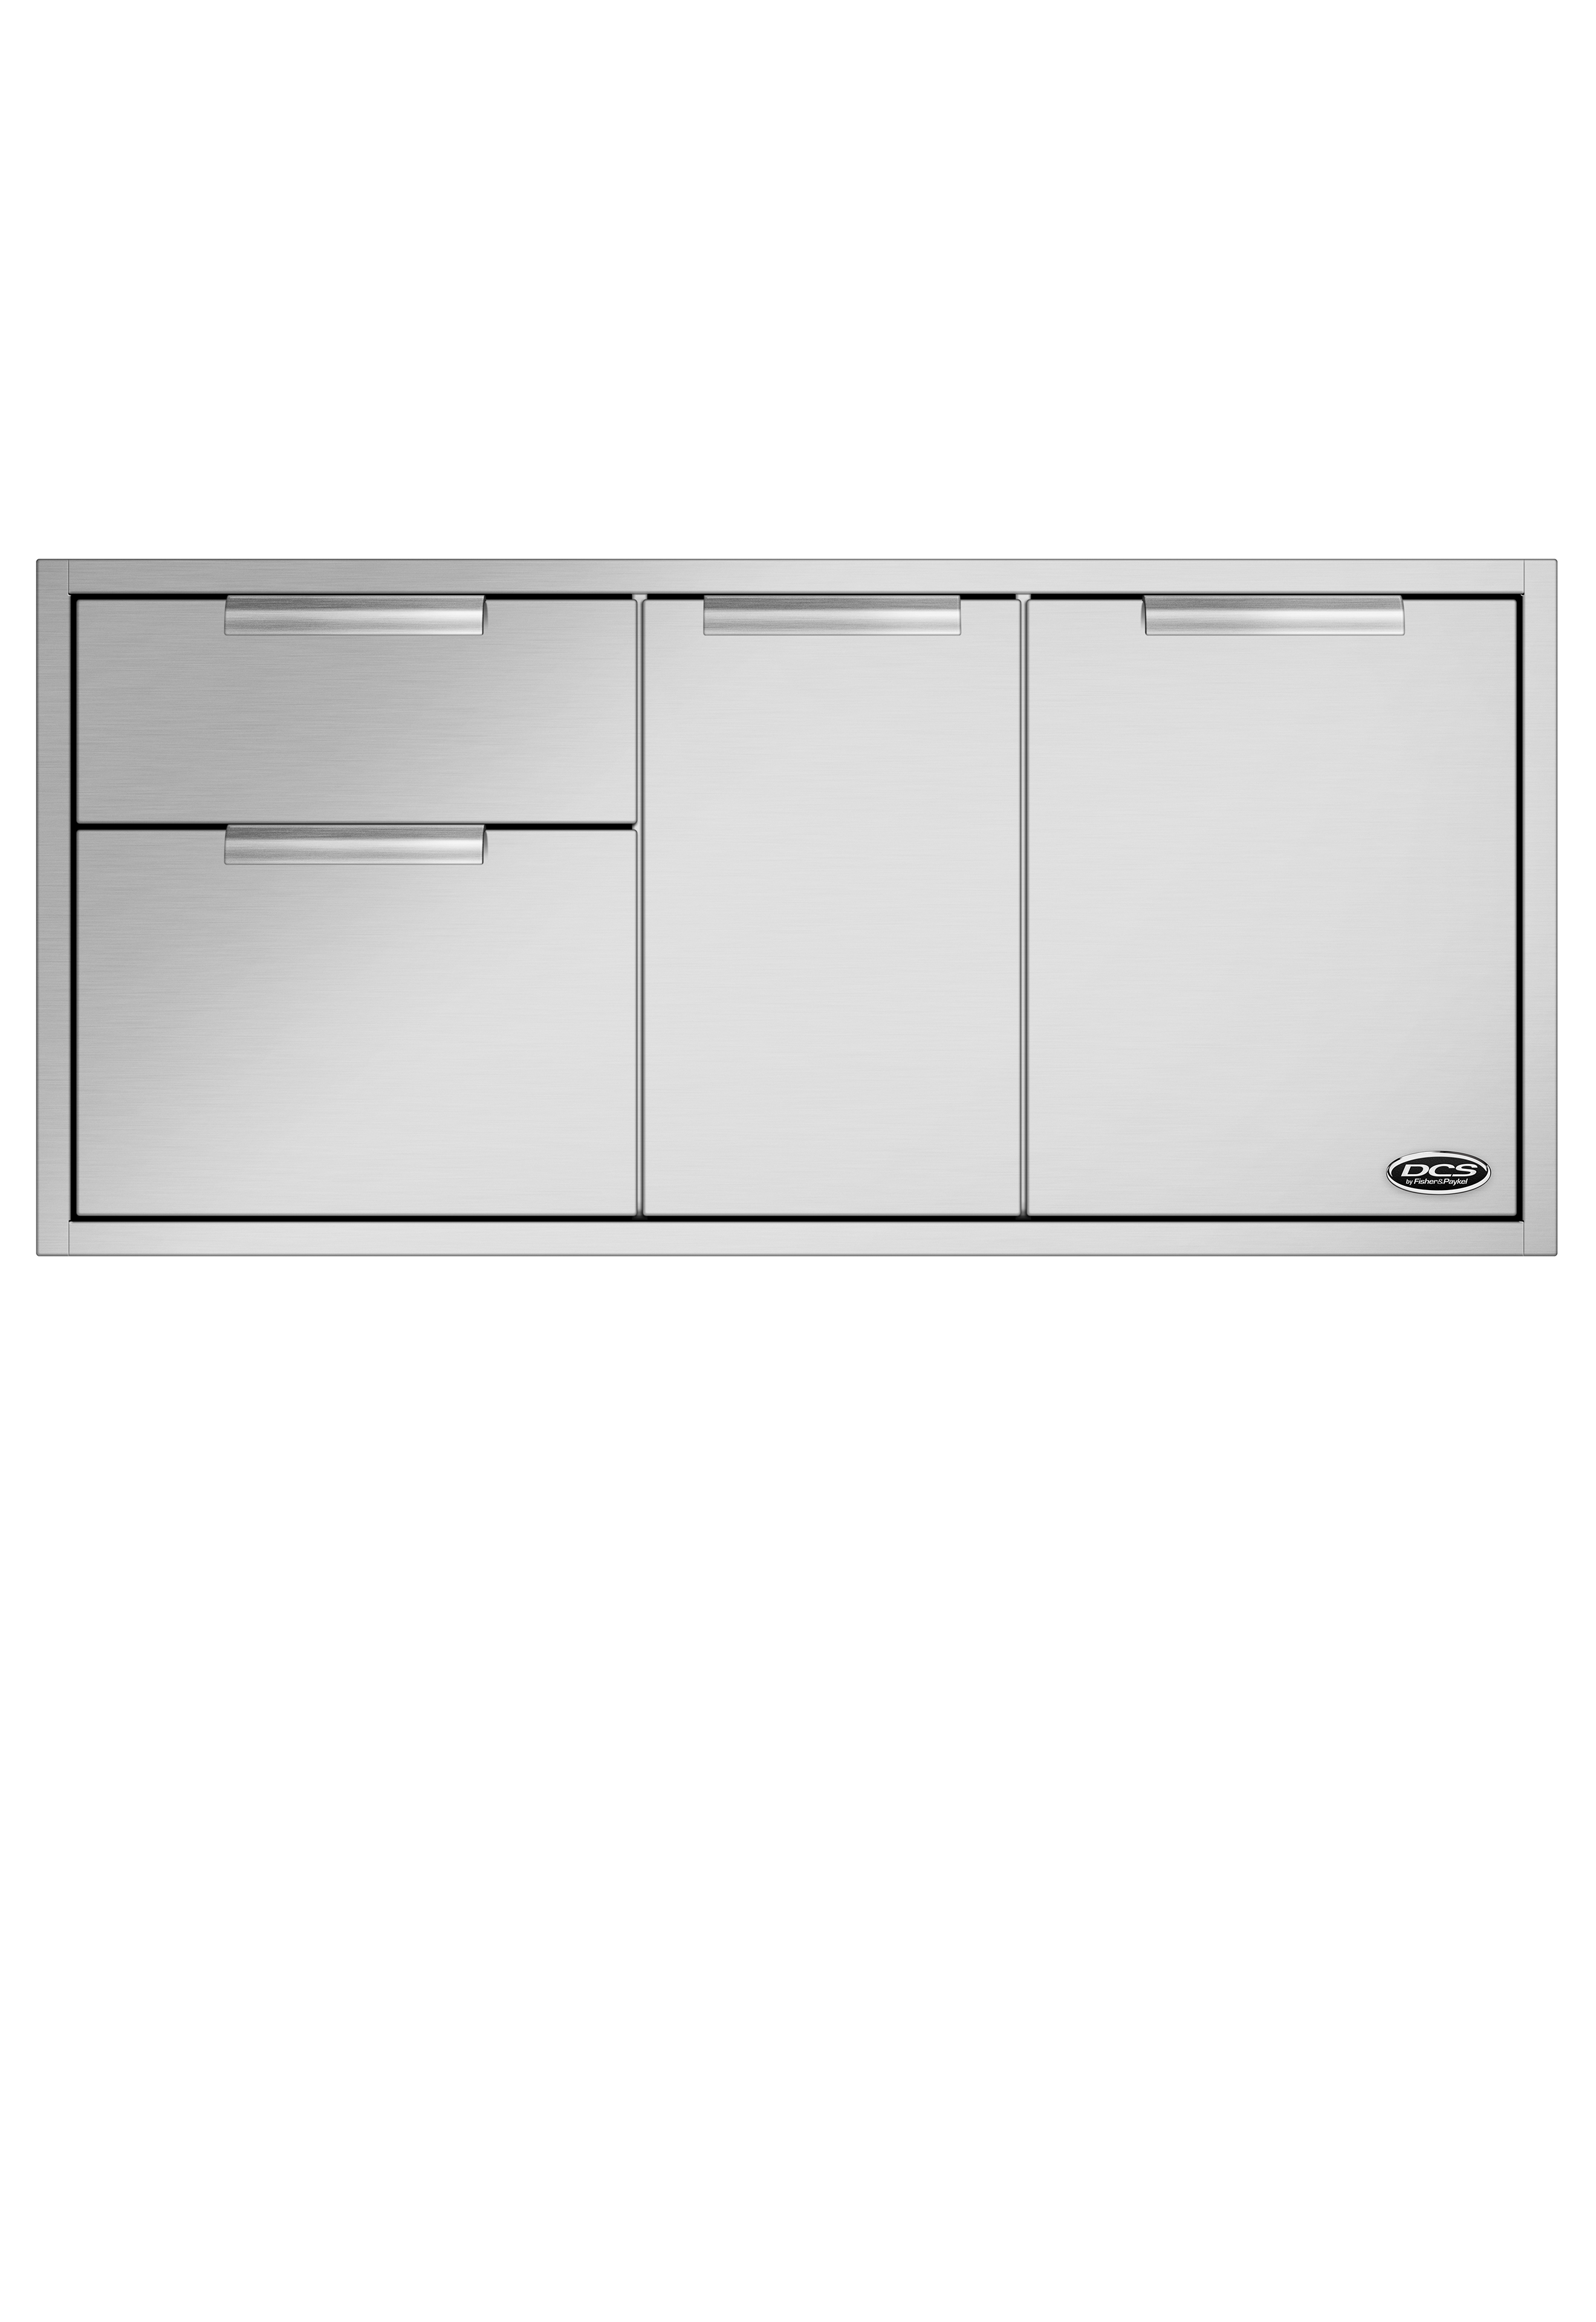 Model: ADR2-48 | Access Drawers Built-in